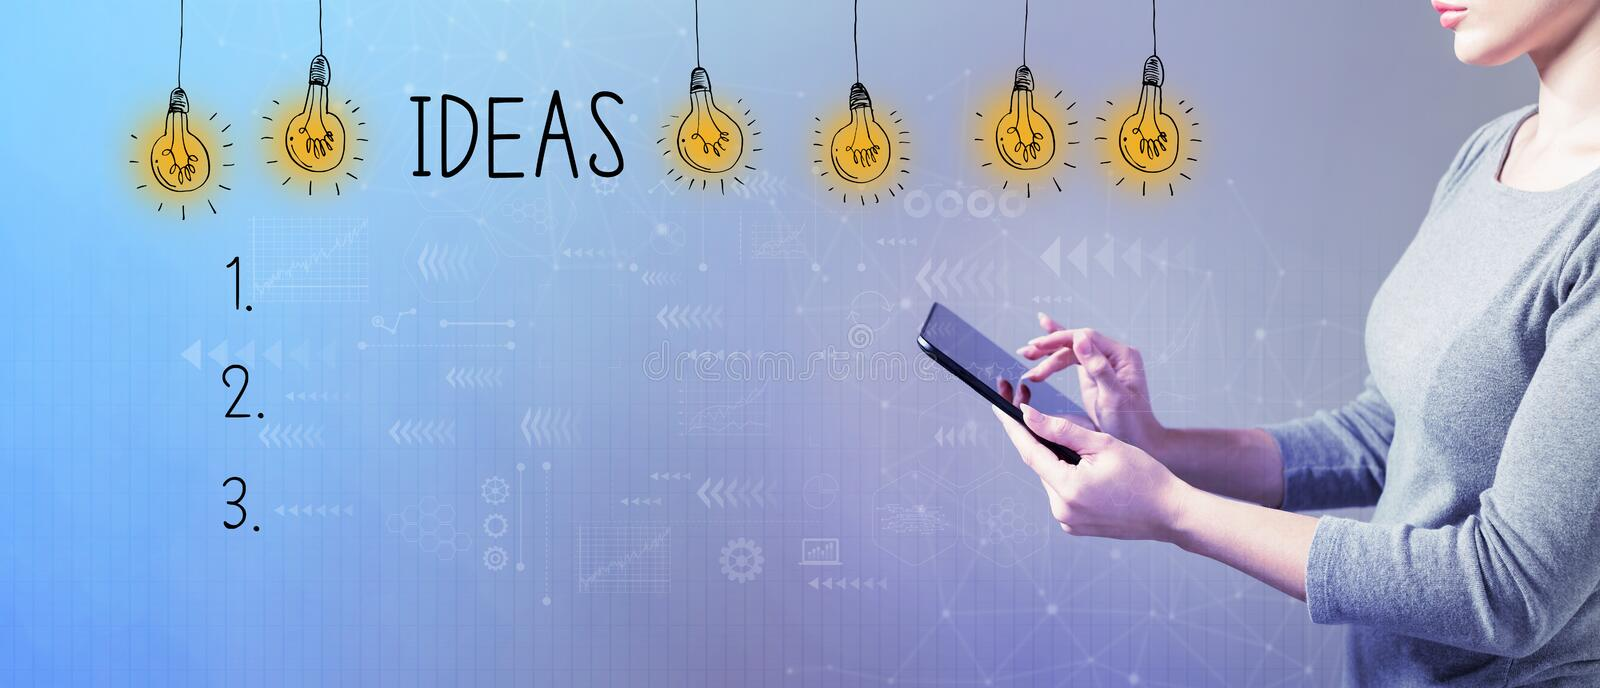 Idea list with woman using a tablet royalty free stock image